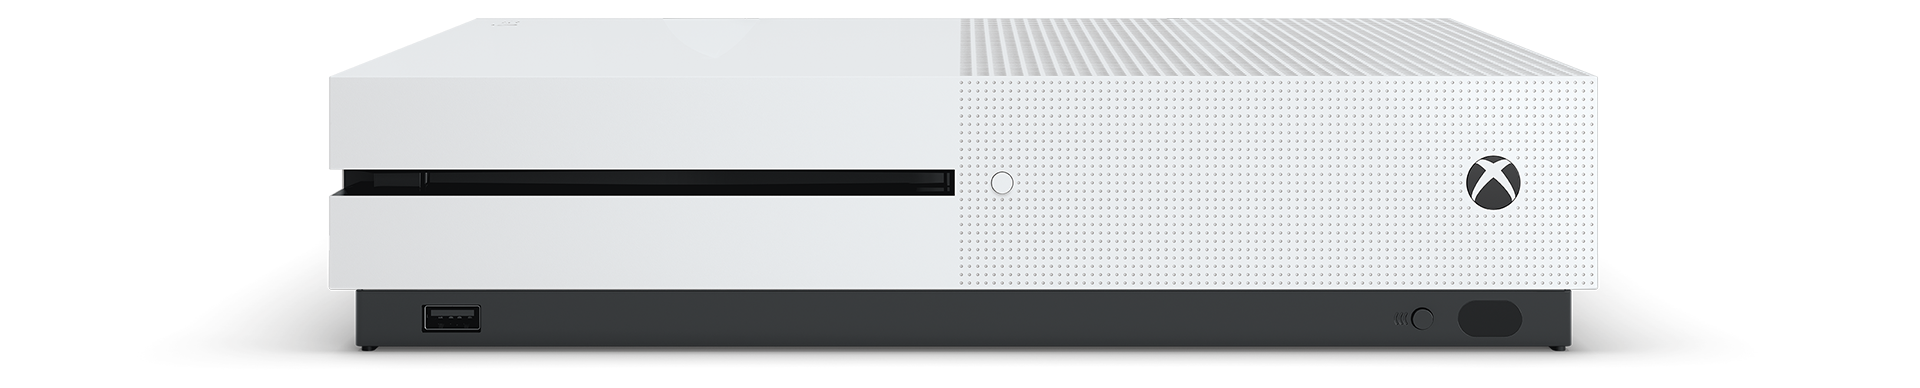 Two Ways to Play DVD on Xbox One S | Leawo Tutorial Center